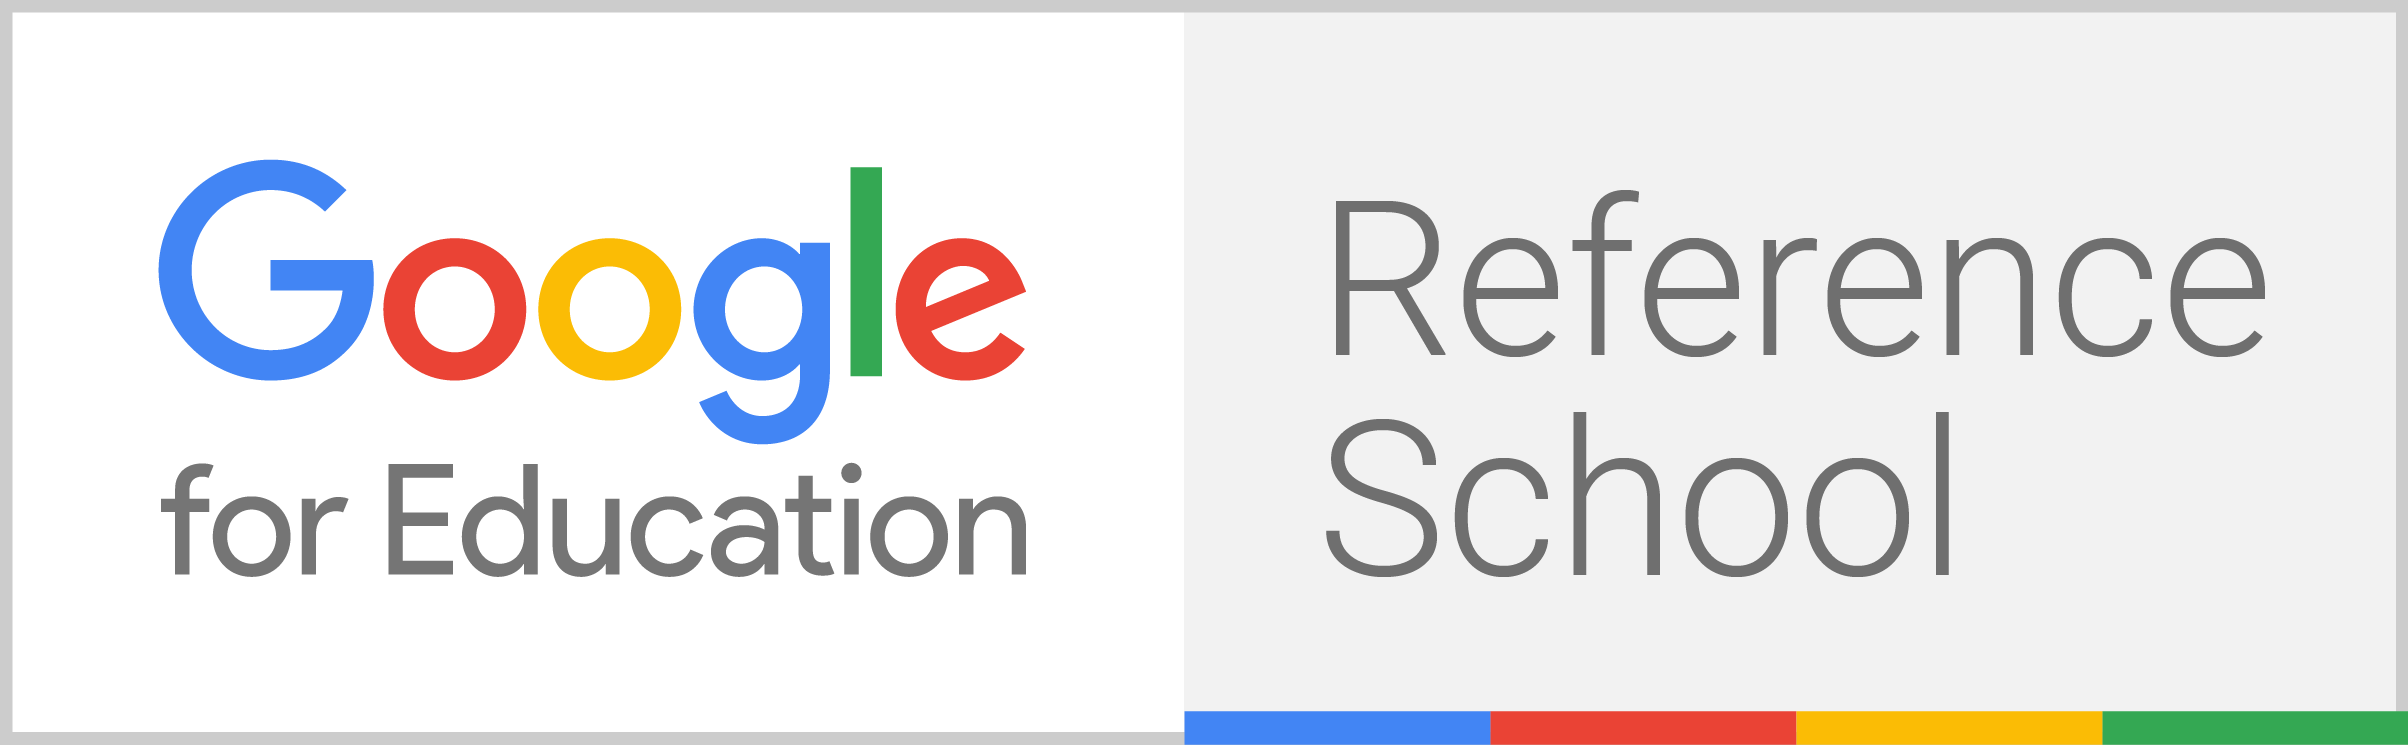 Google RefSchool Badge lge